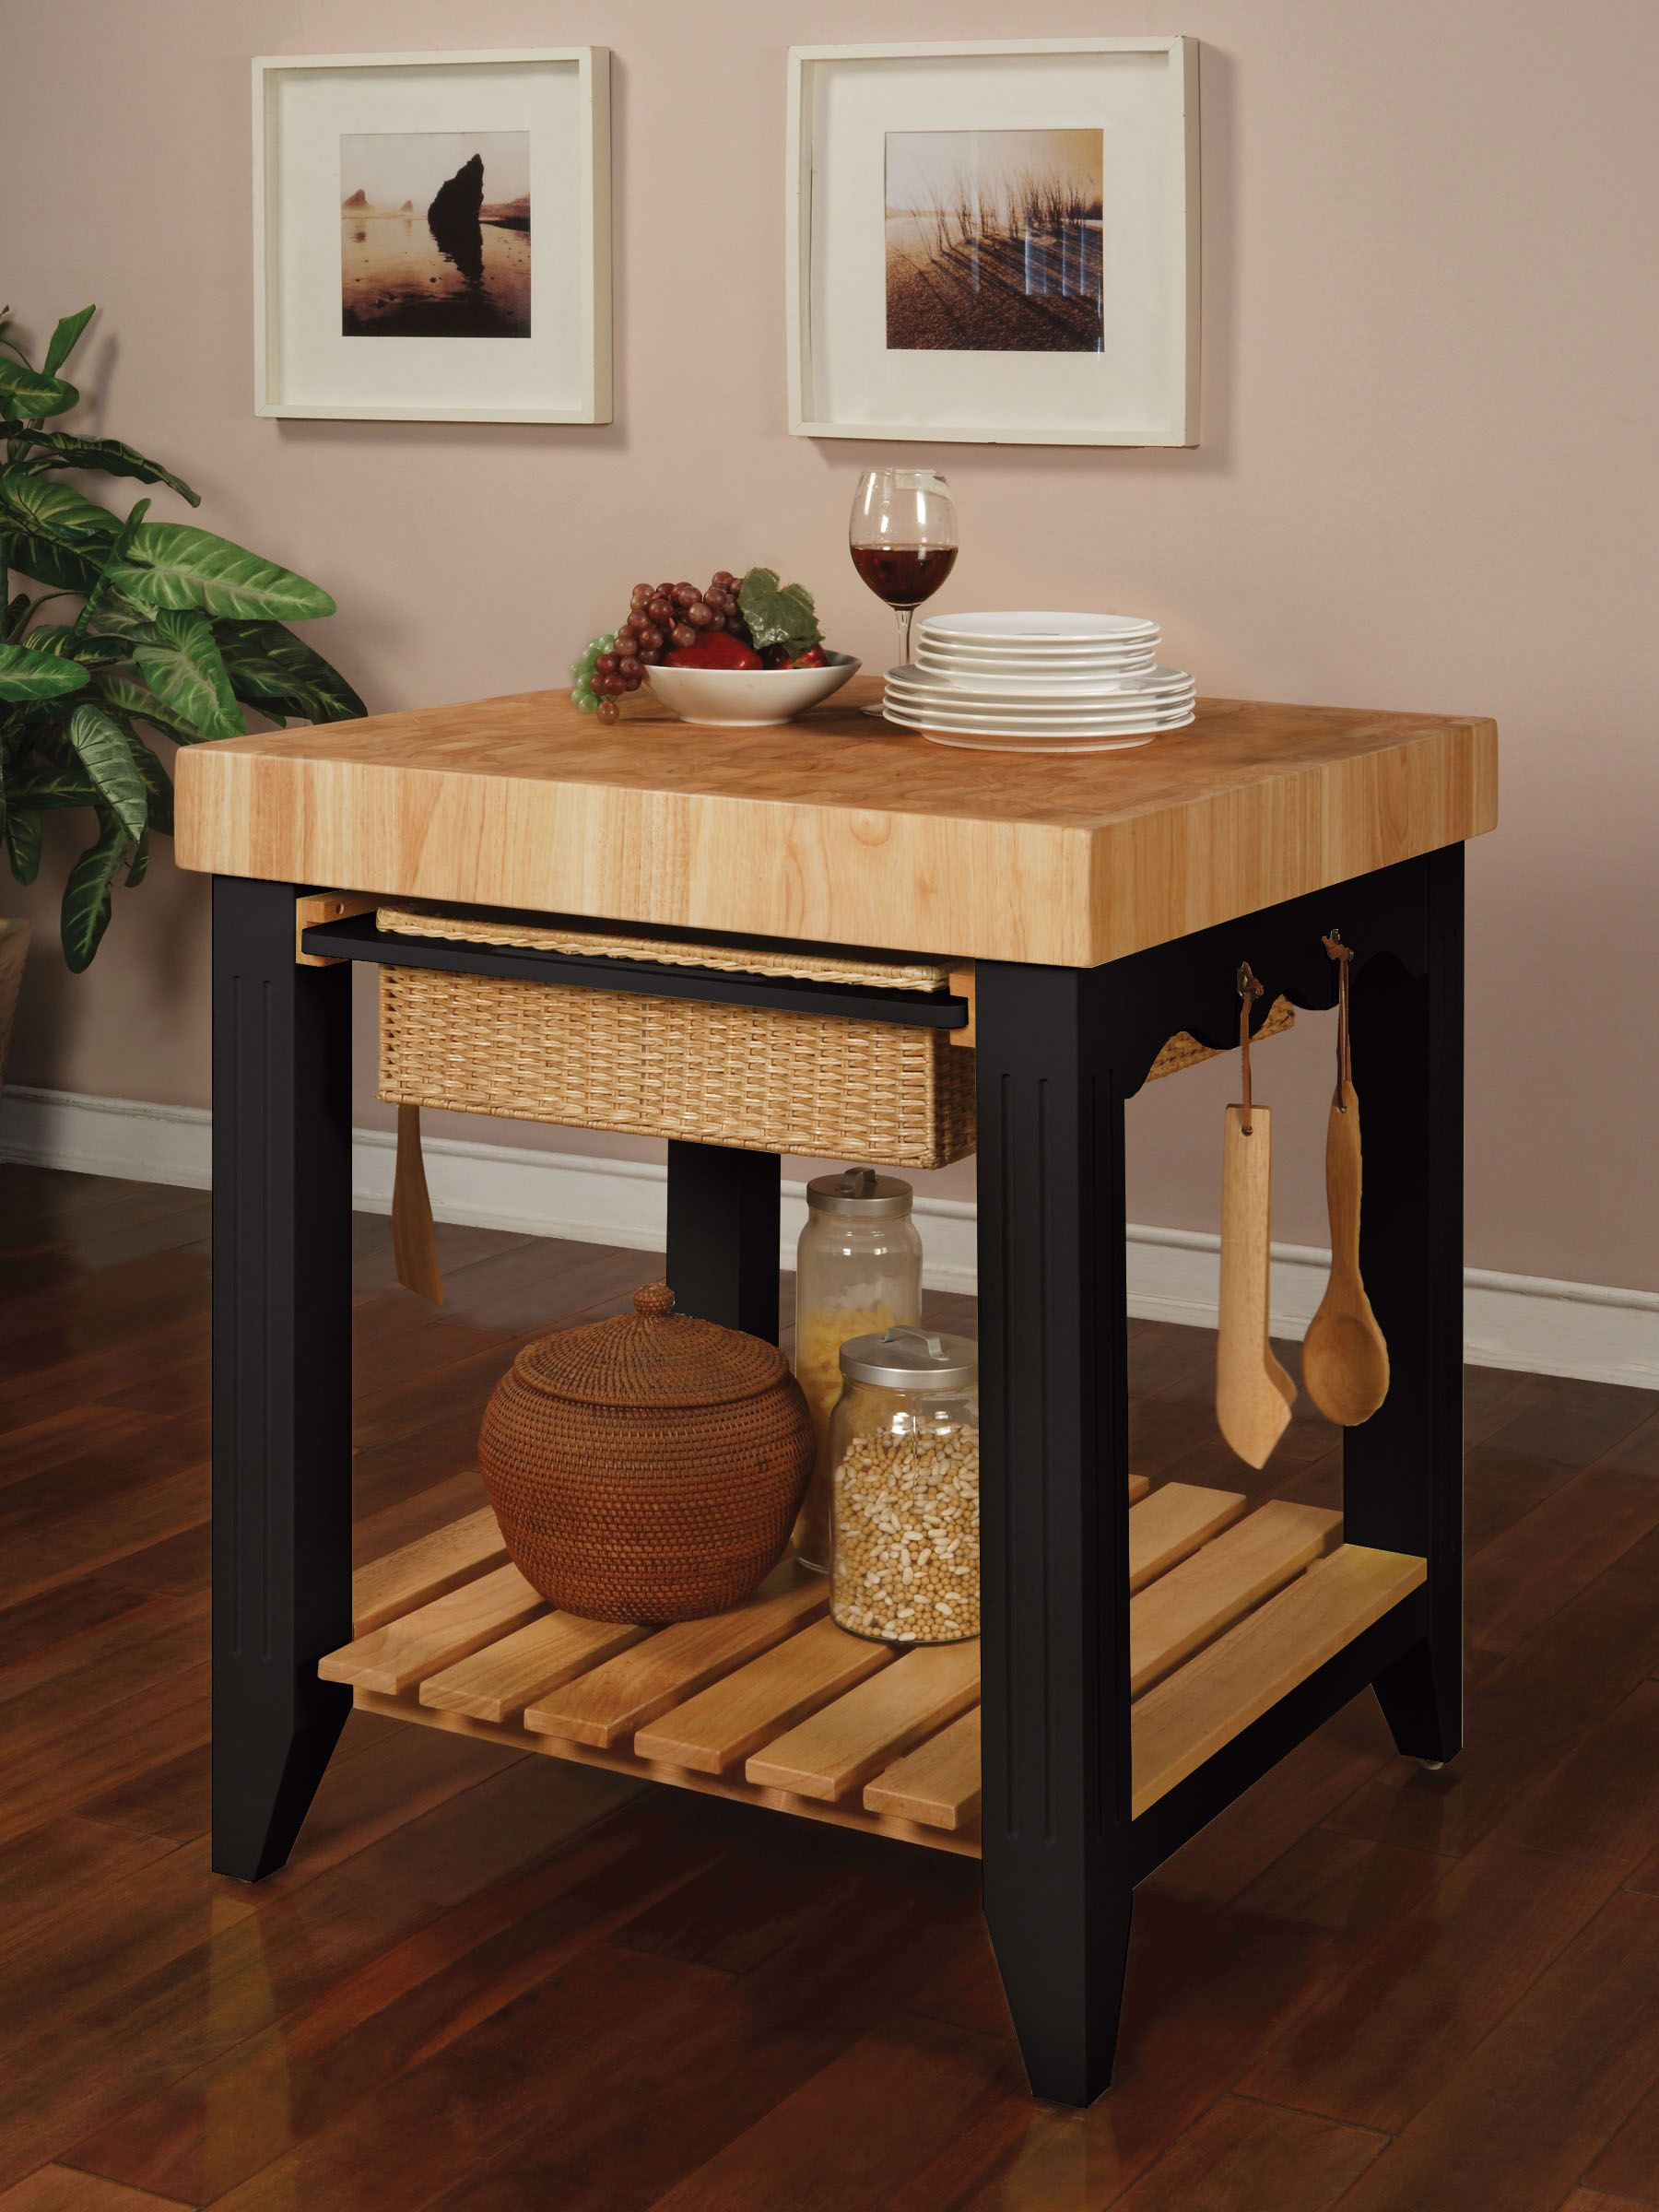 l powell color story black butcher block kitchen island | products